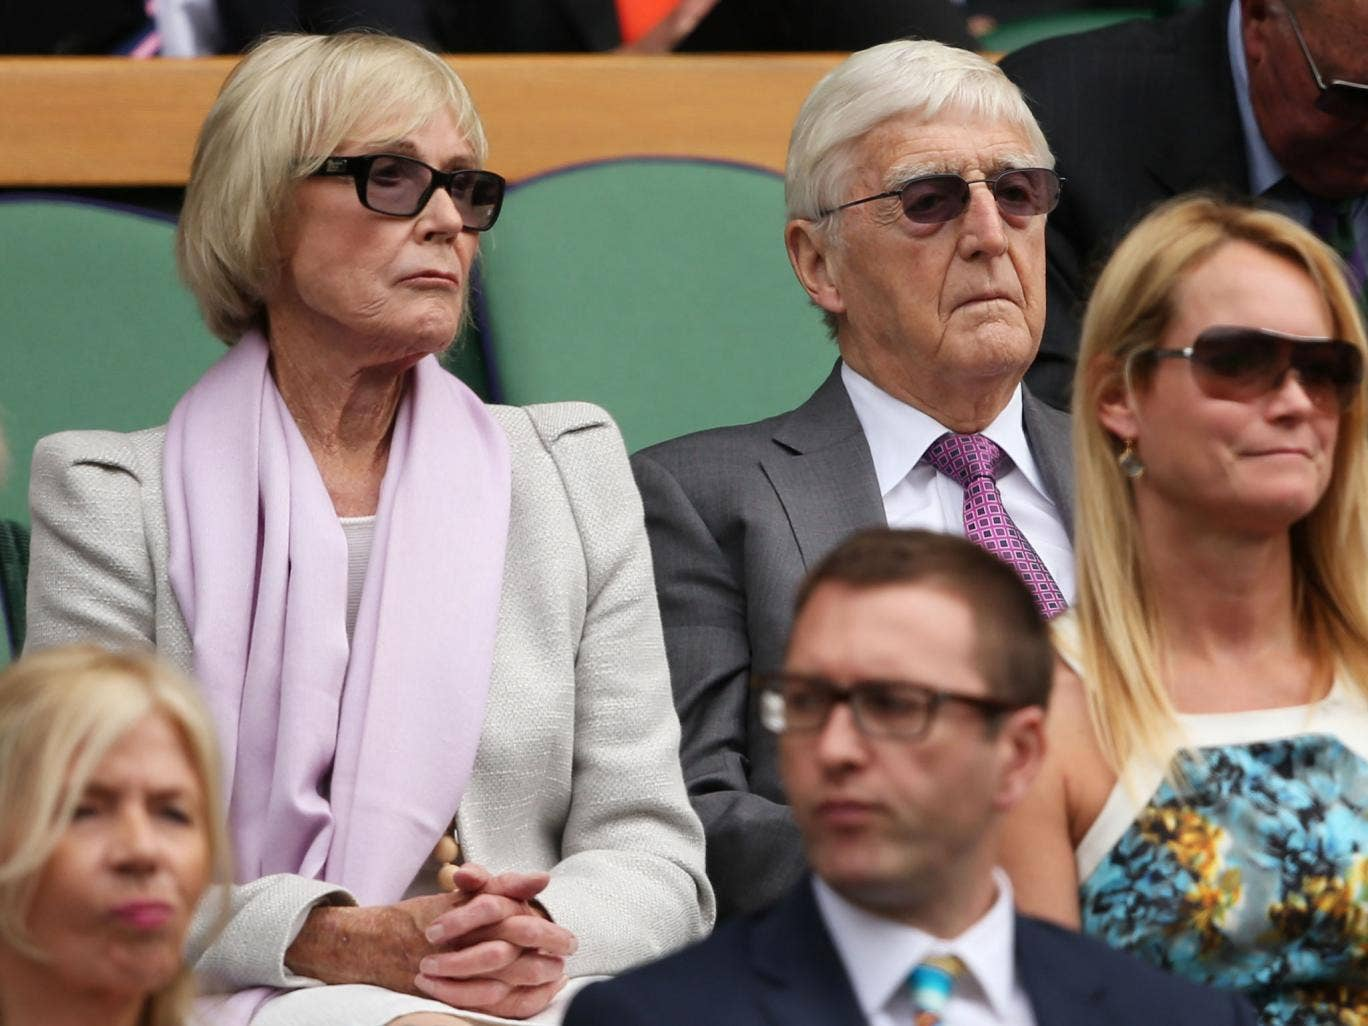 Michael Parkinson in the Wimbledon crowd